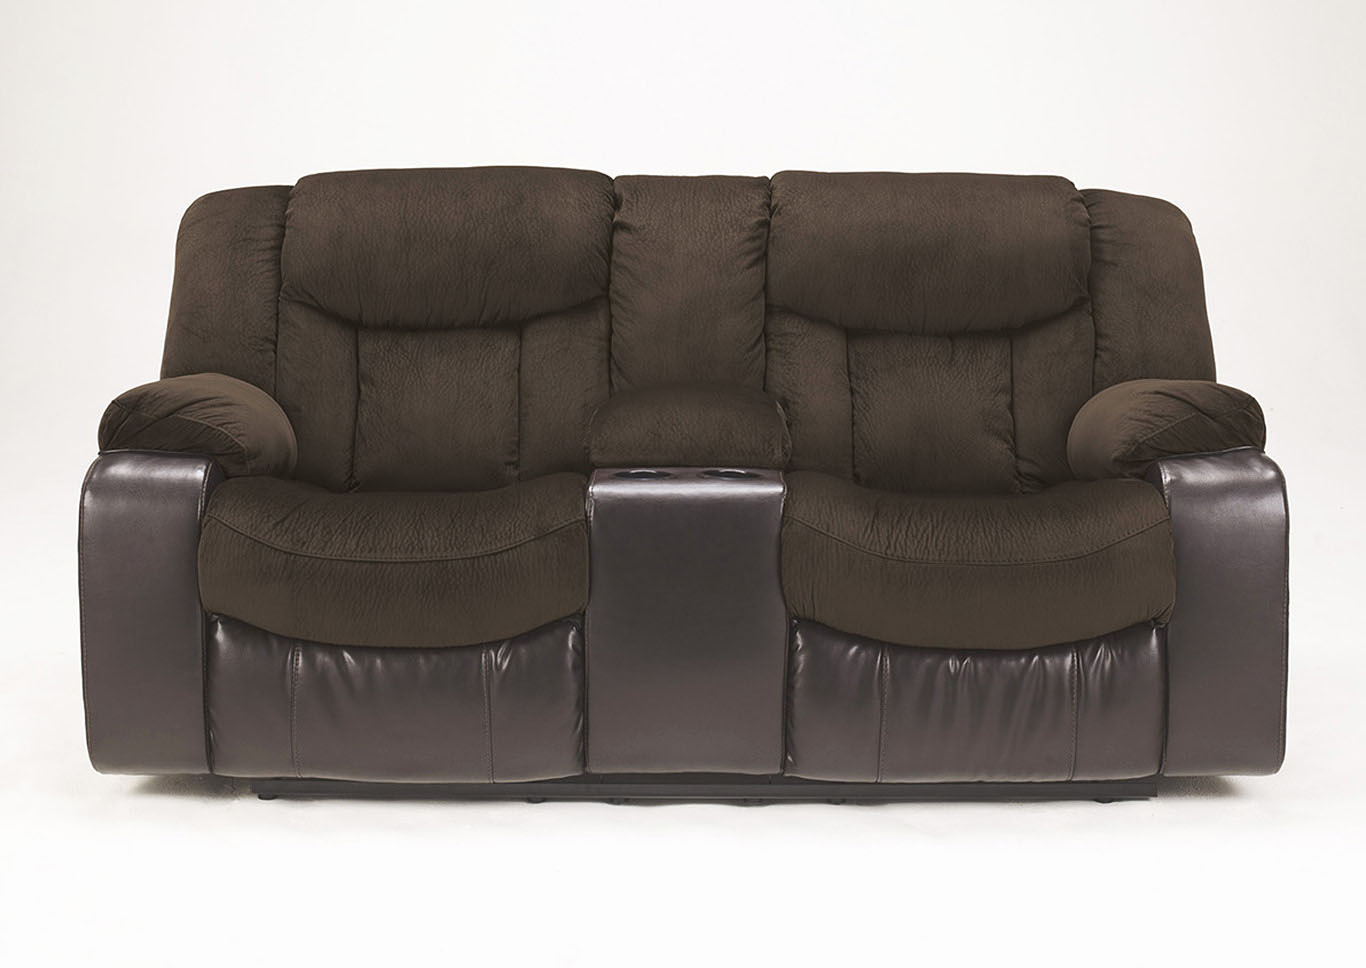 Tafton Java Double Reclining Loveseat w/Console,Signature Design By Ashley